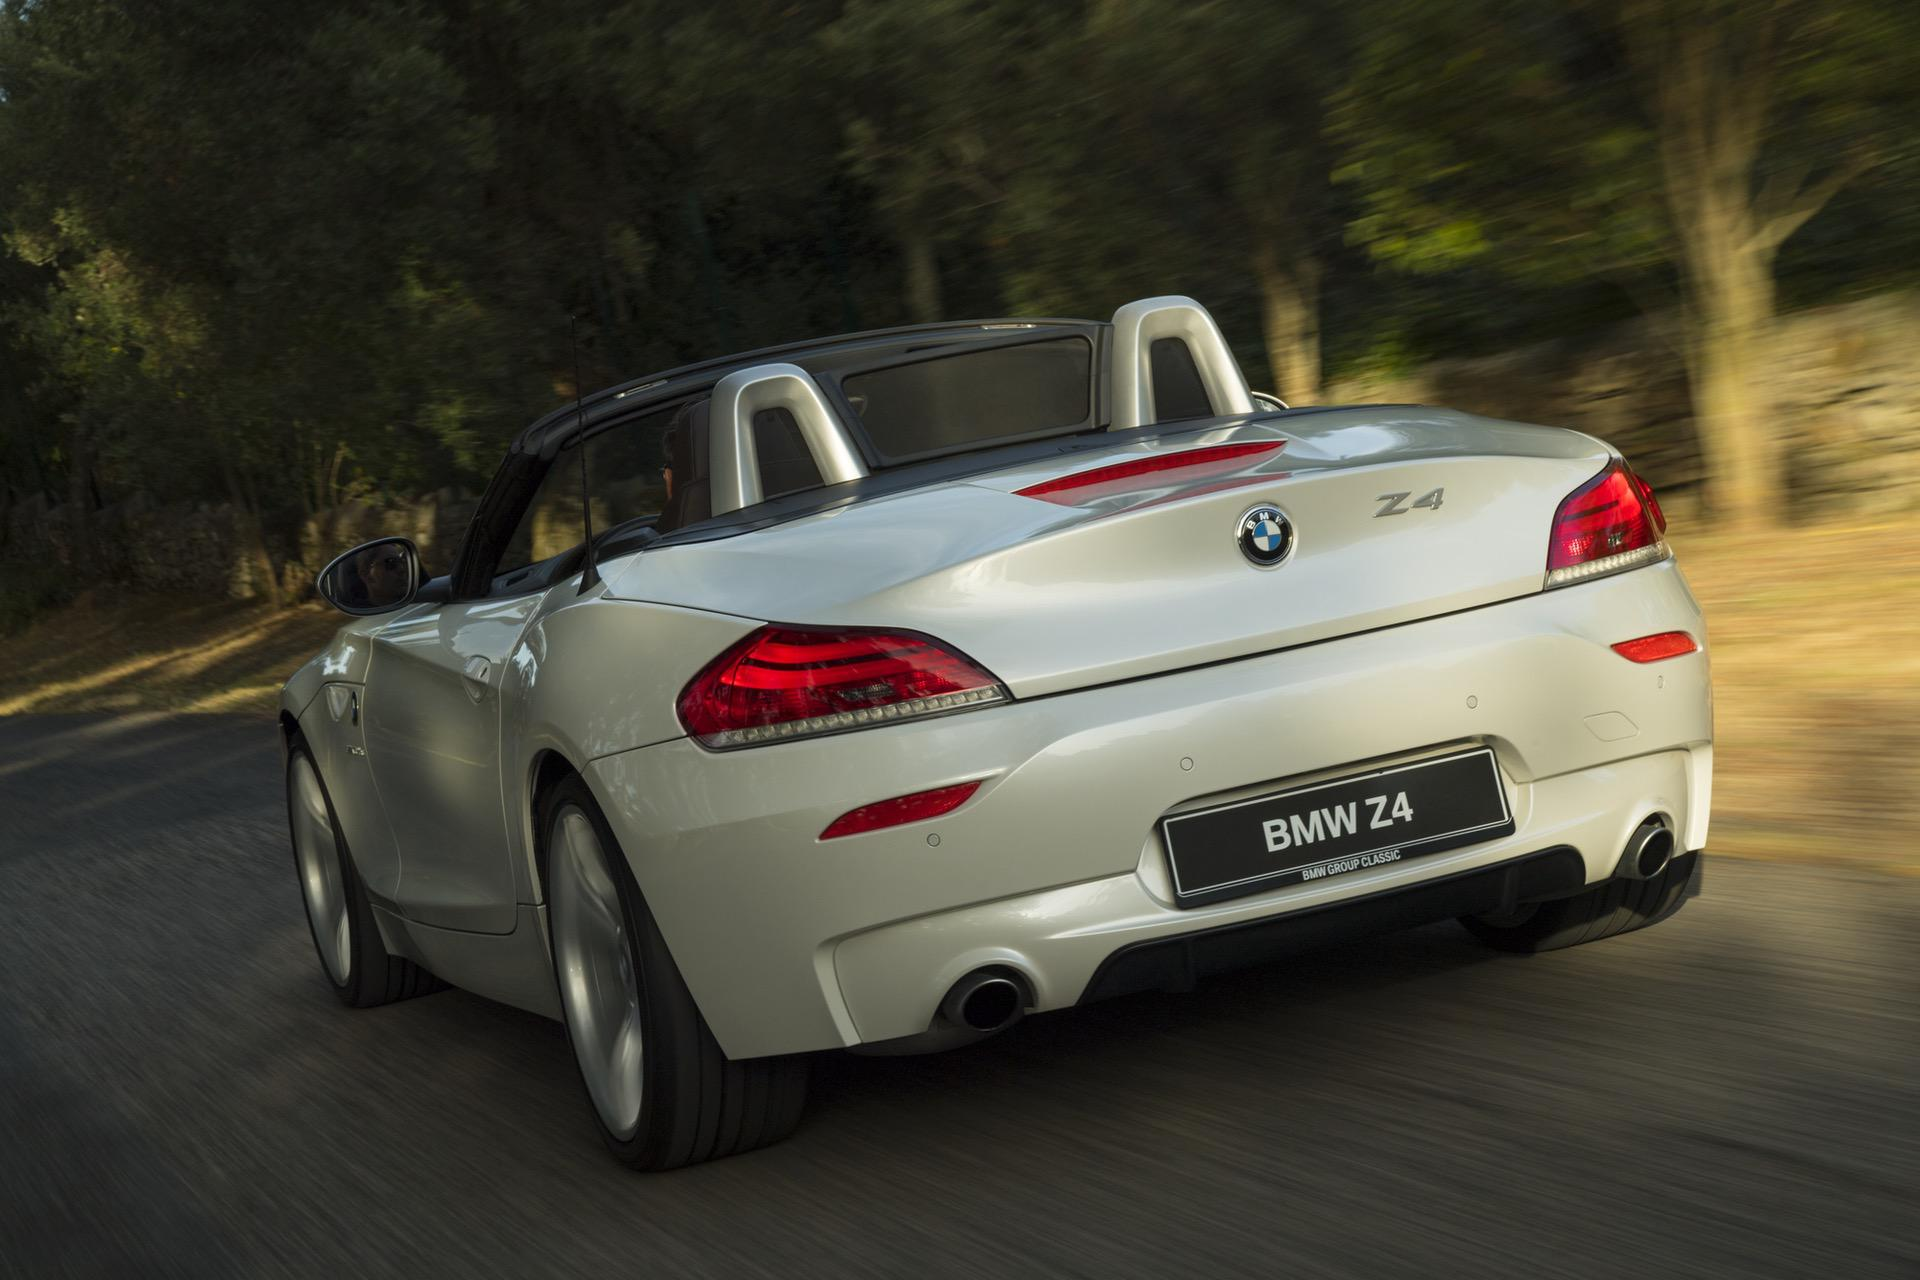 BMW E89 Z4 Roadster images 08